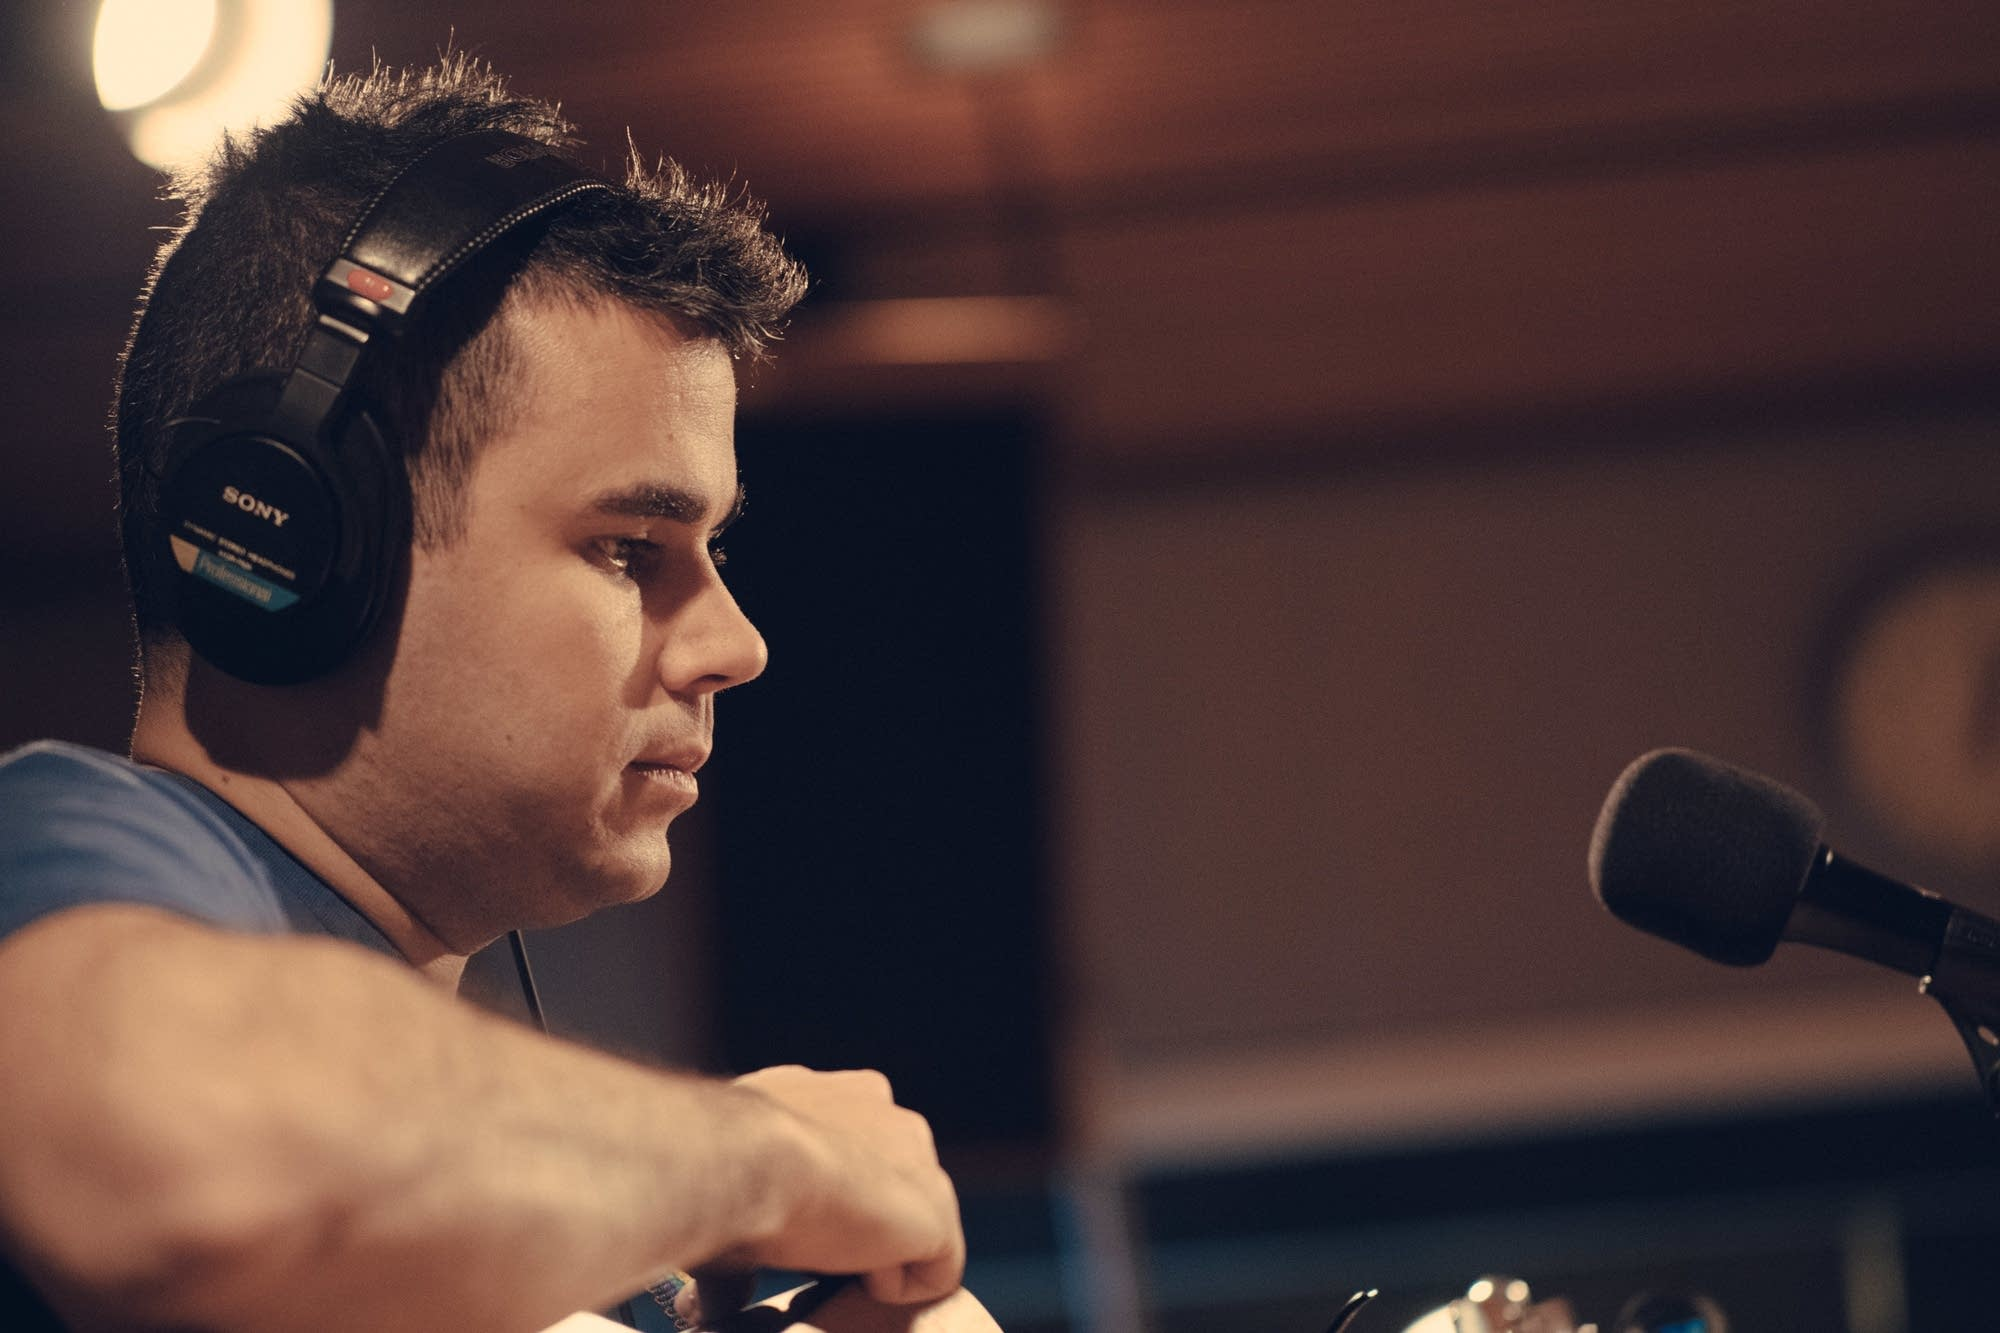 Rostam in The Current studio